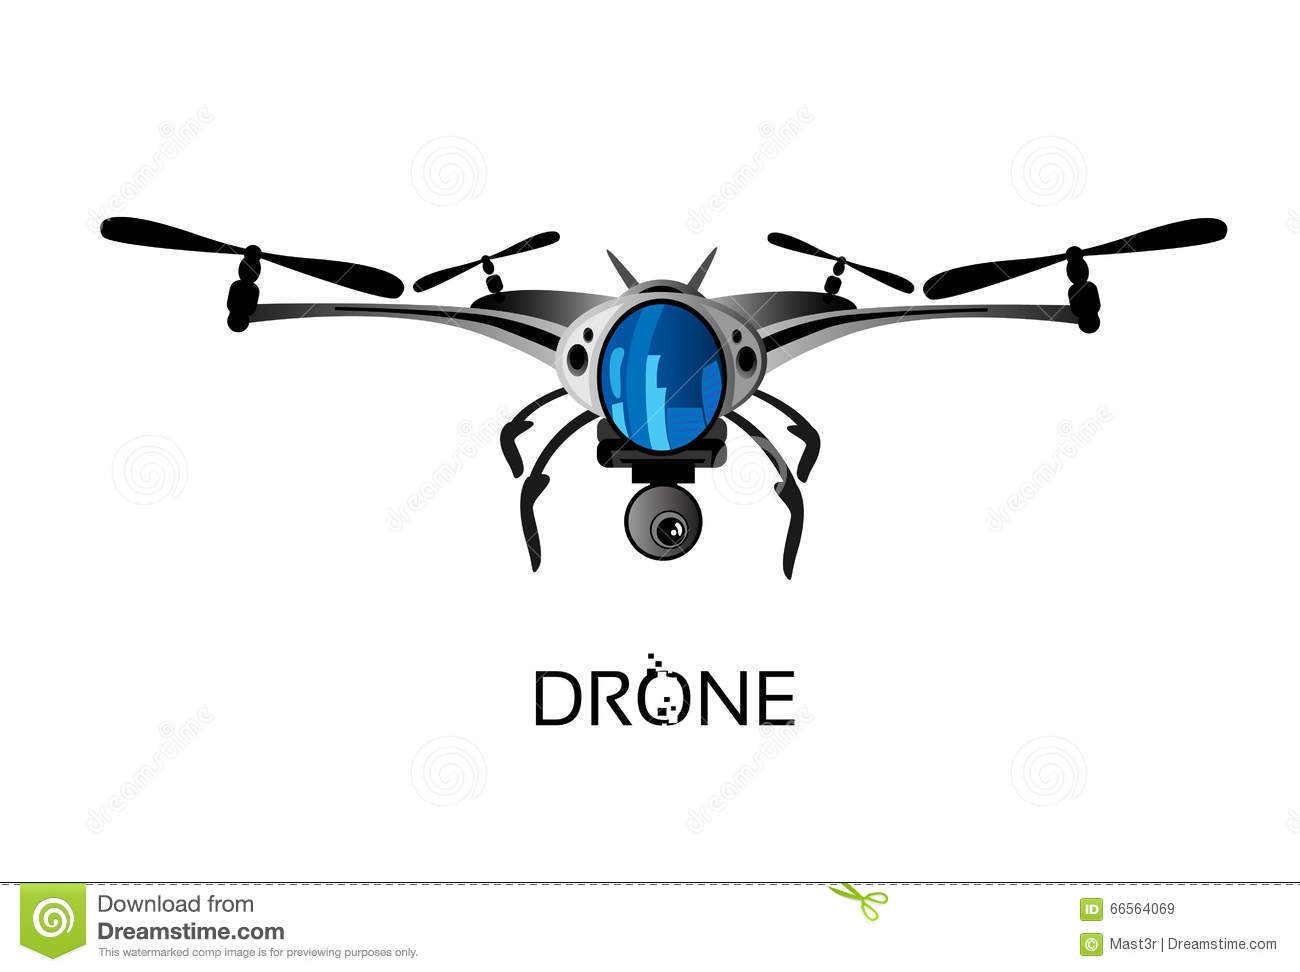 rc drone videos with Stock Illustration Drone Flying Air Quadrocopter Logo Icon Vector Illustration Image66564069 on Star Wars Battle Drones in addition 14658 likewise 4672 Pati e Electrico Hoverboard likewise Stock Illustration Drone Flying Air Quadrocopter Logo Icon Vector Illustration Image66564069 besides Disney Princess Cute 10 Snow White Soft Doll.